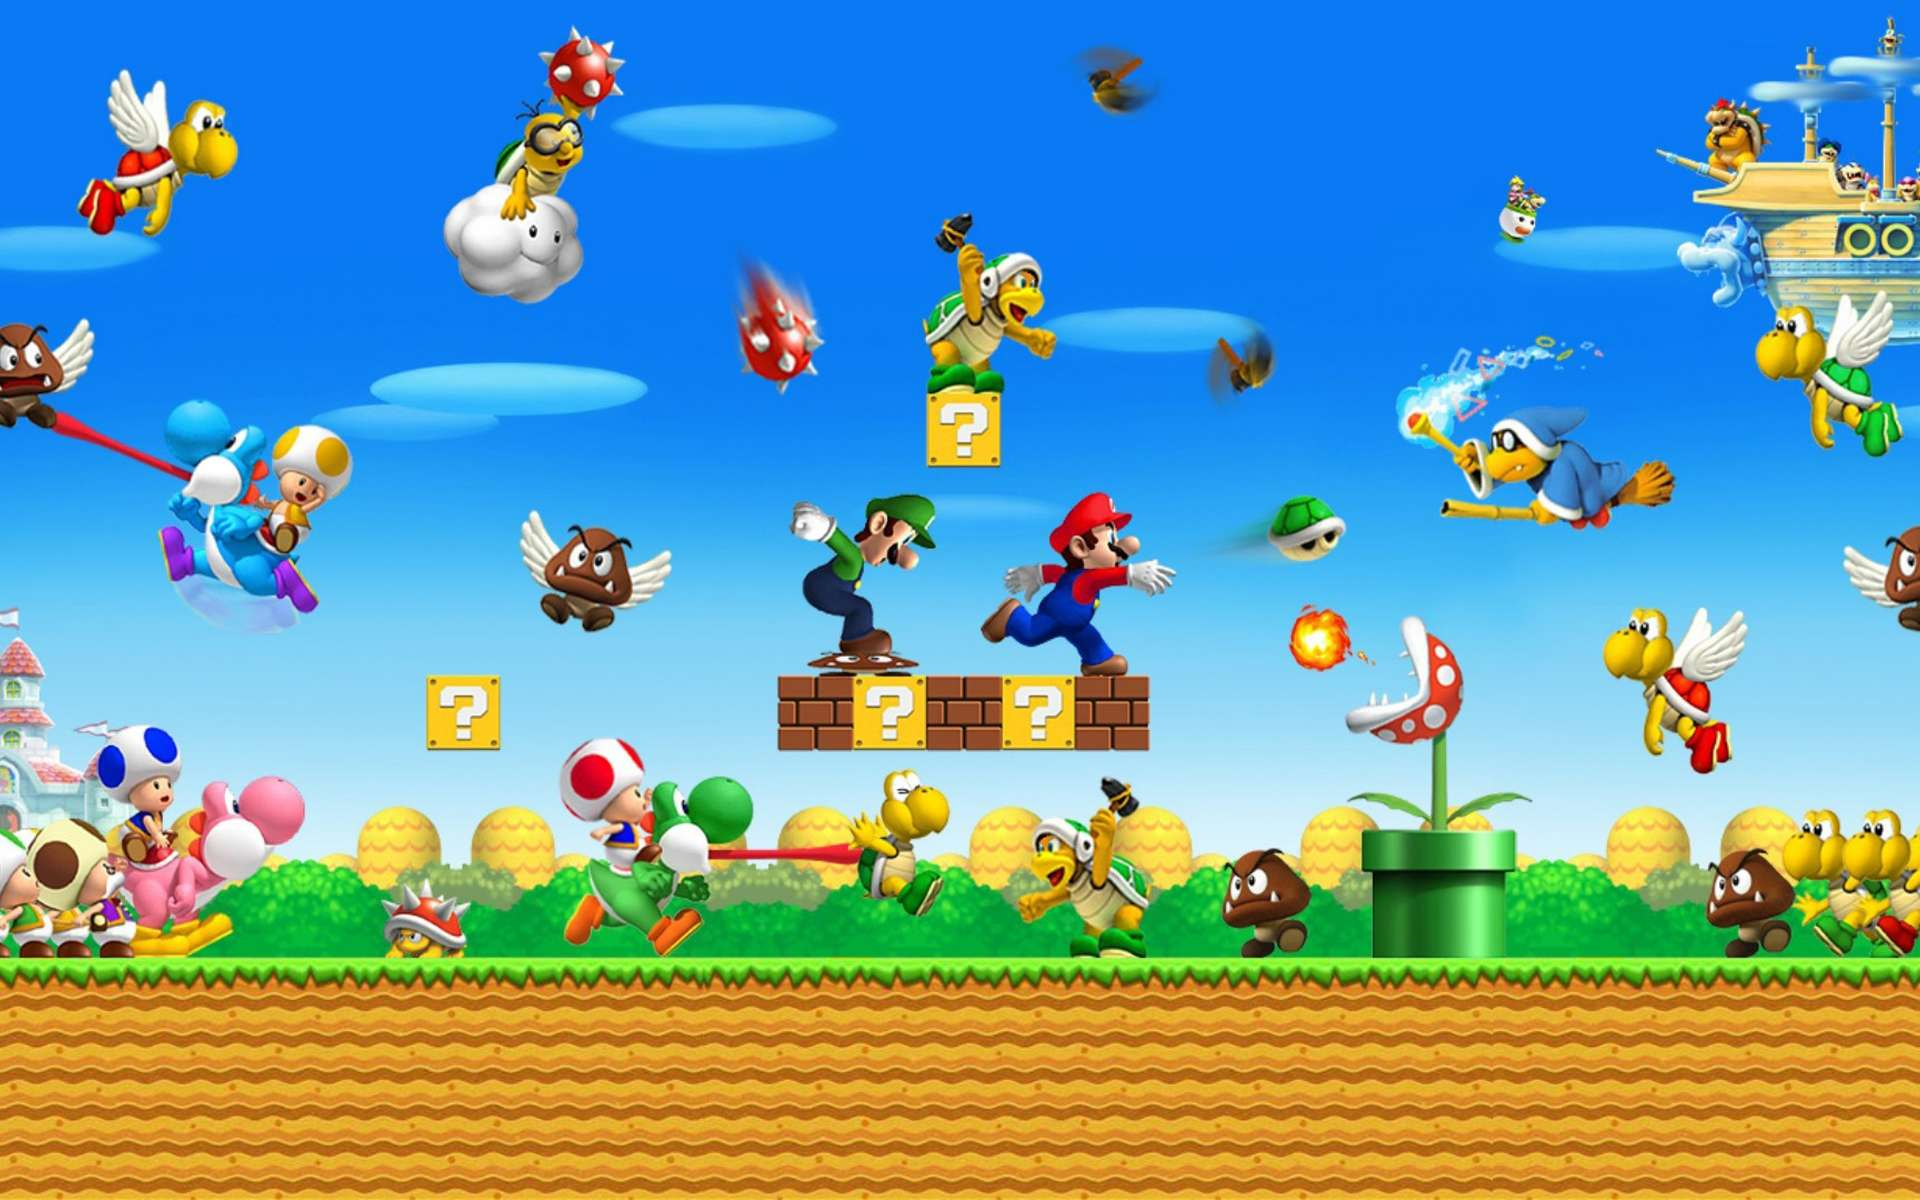 Super Mario New Tab for Google Chrome